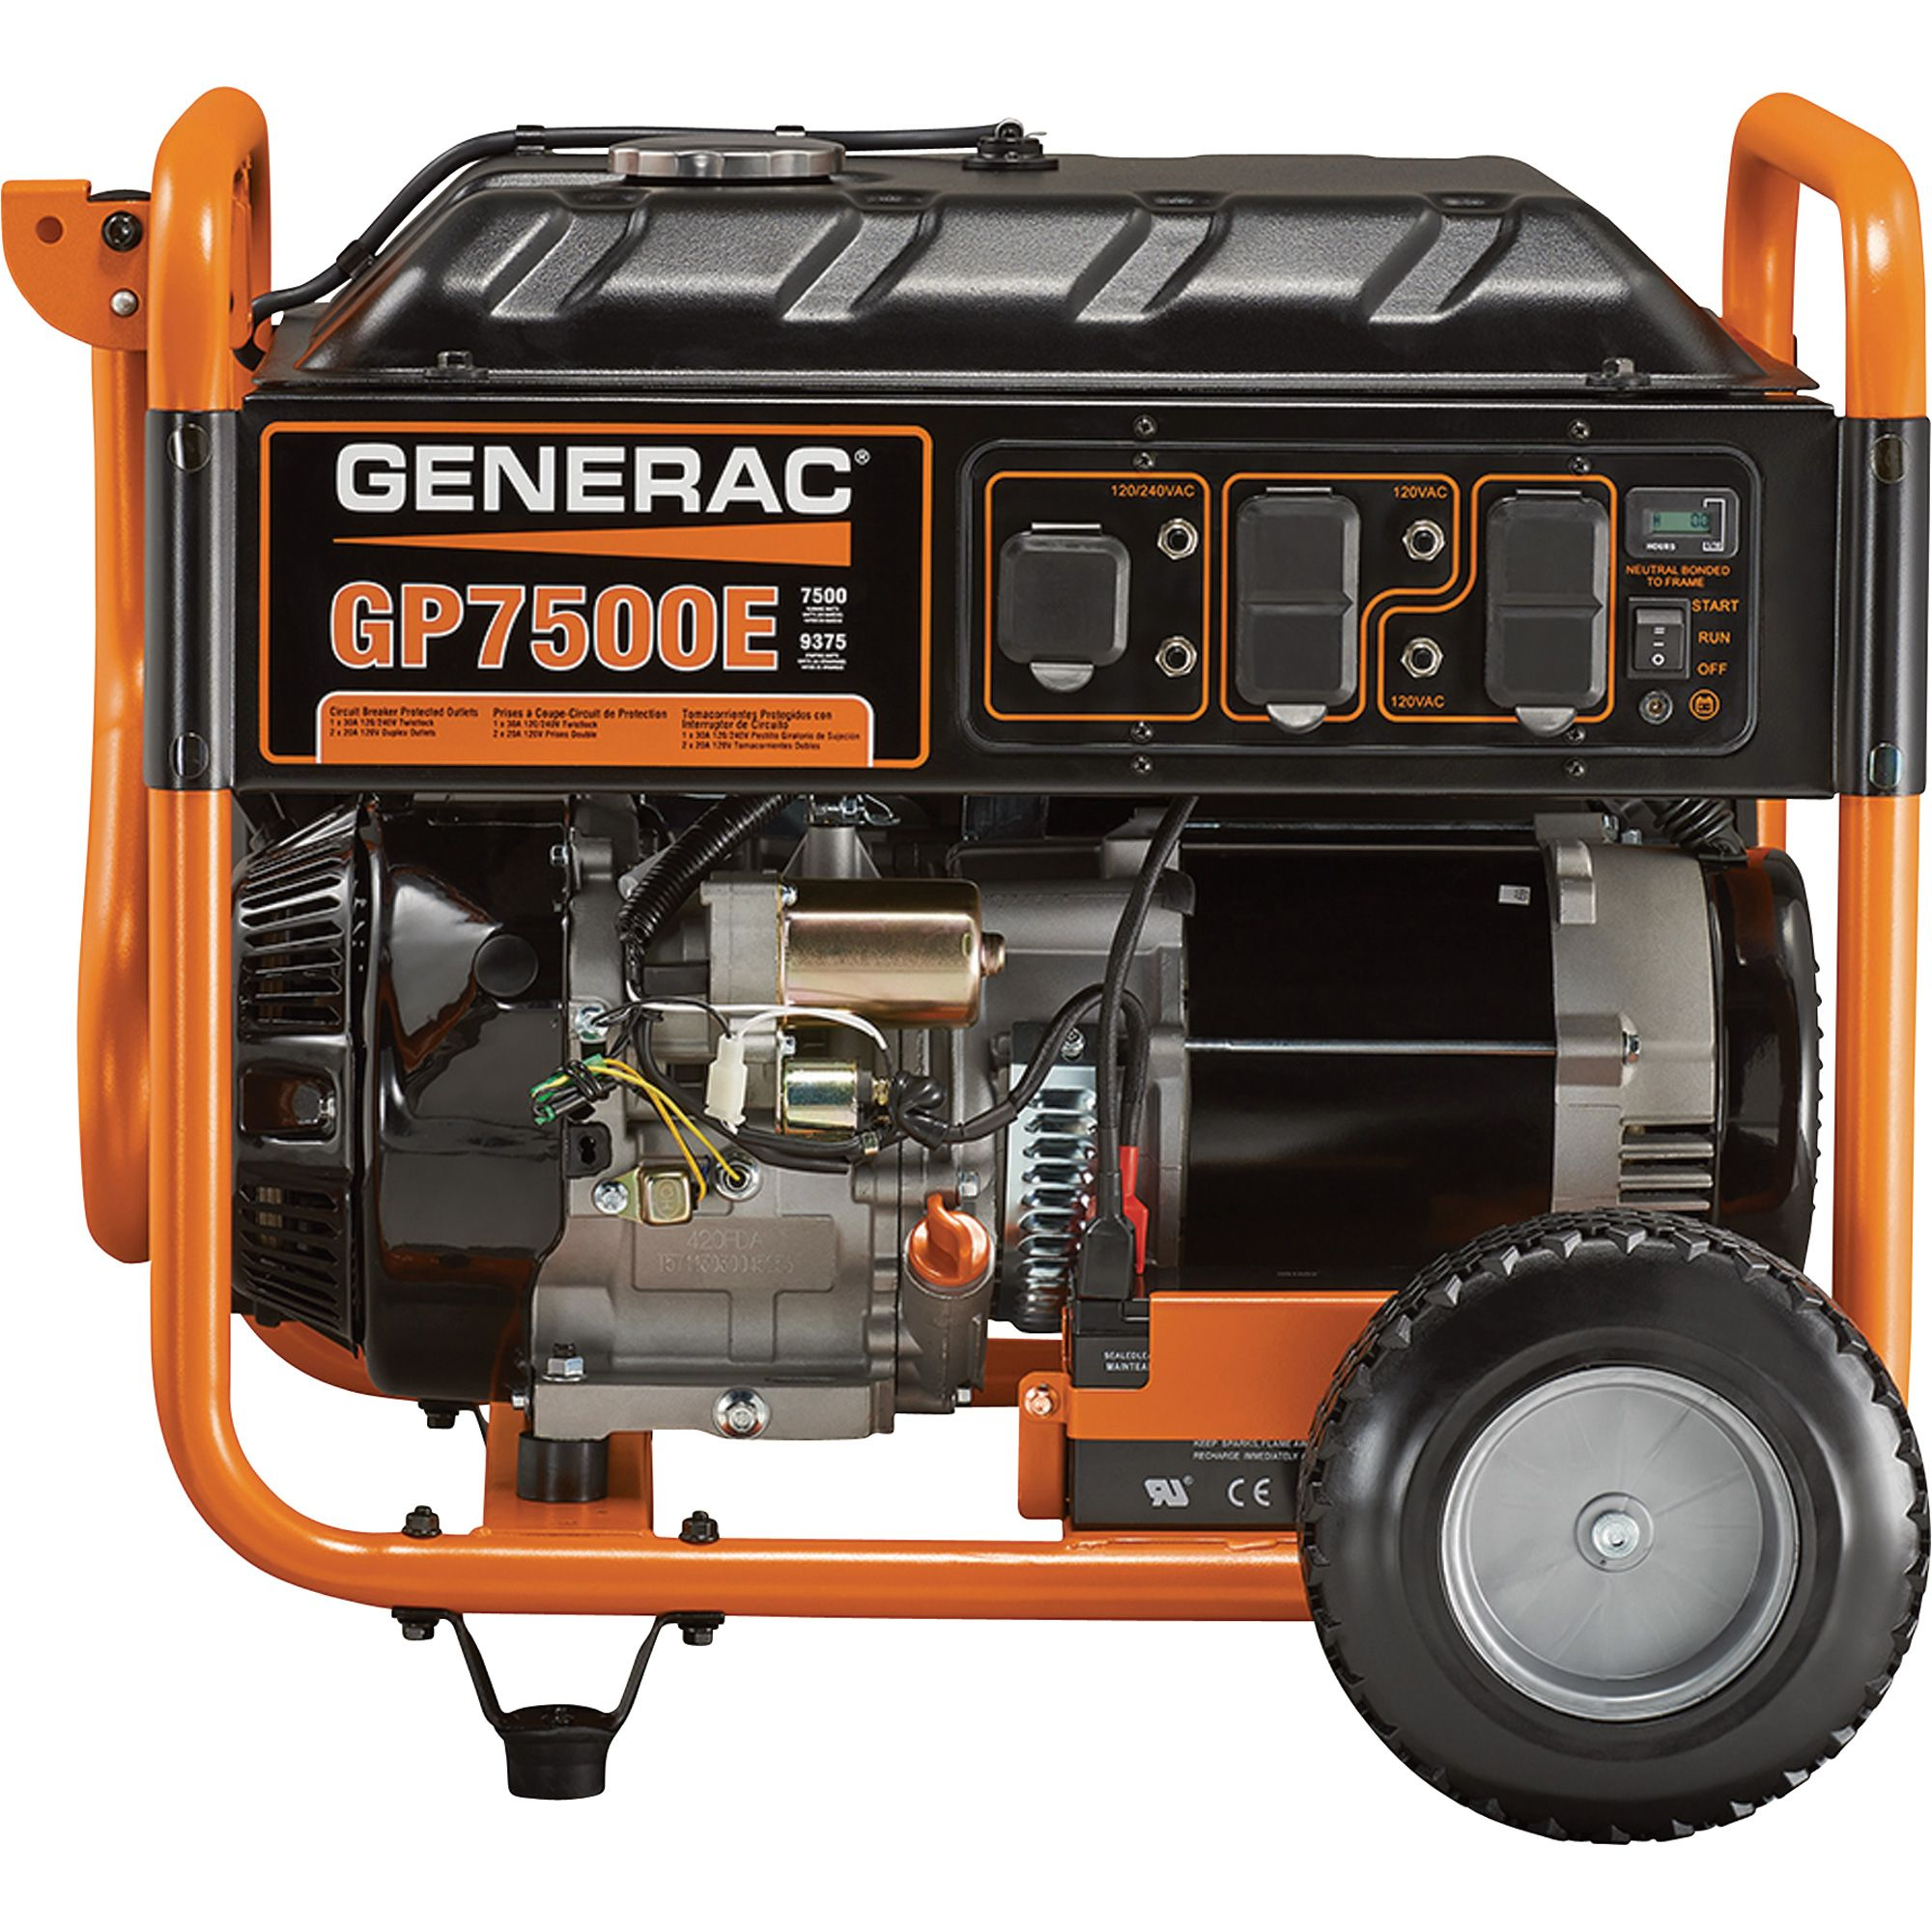 hight resolution of this generac gp7500e portable generator is easy to use in a variety of applications and offers affordable reliability the 420cc generac ohv engine has